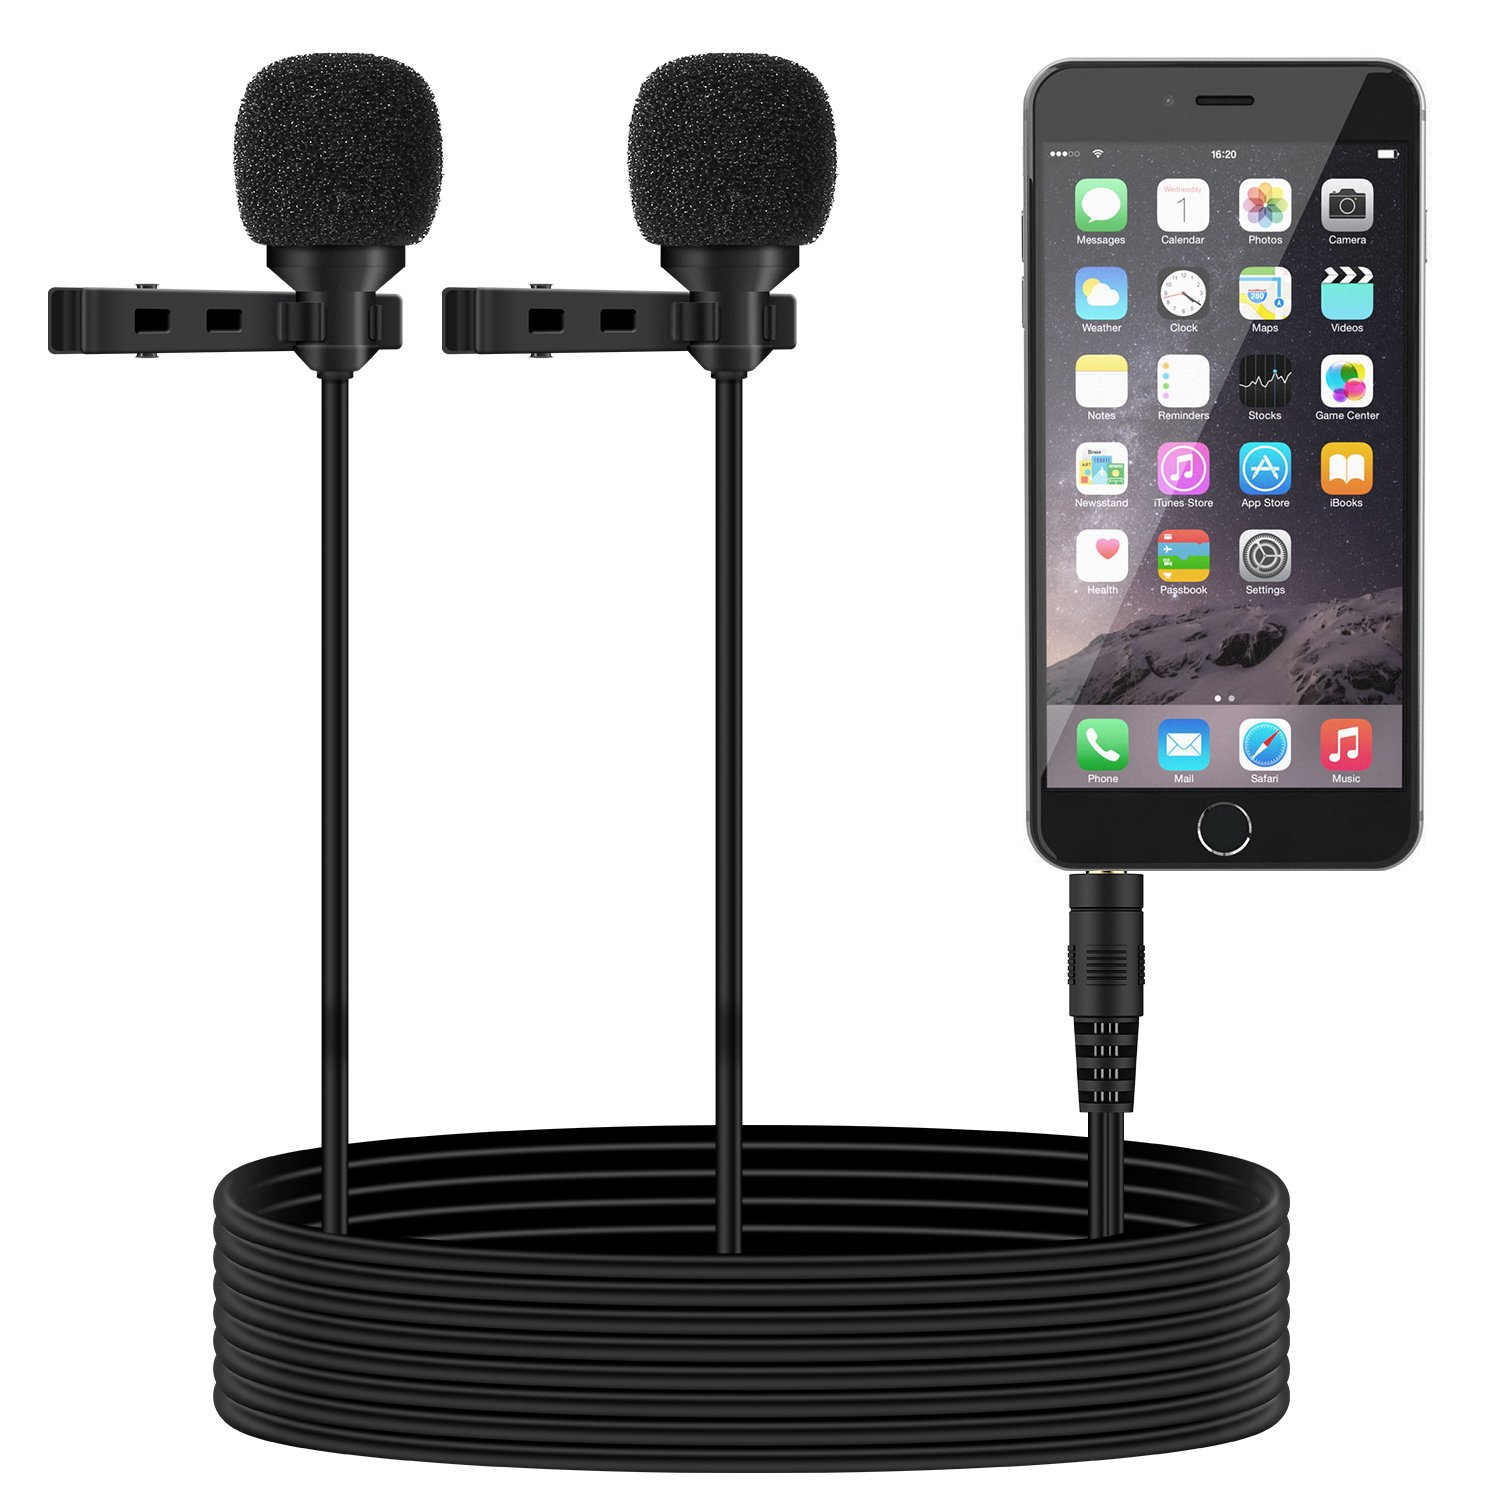 TONOR Dual Lavalier Microphone, Lapel Interview Clip-on Mini Omnidirectional Condenser Mic for iPhone, Android Smartphones, iPad, 55 inch, Black TN120448BL